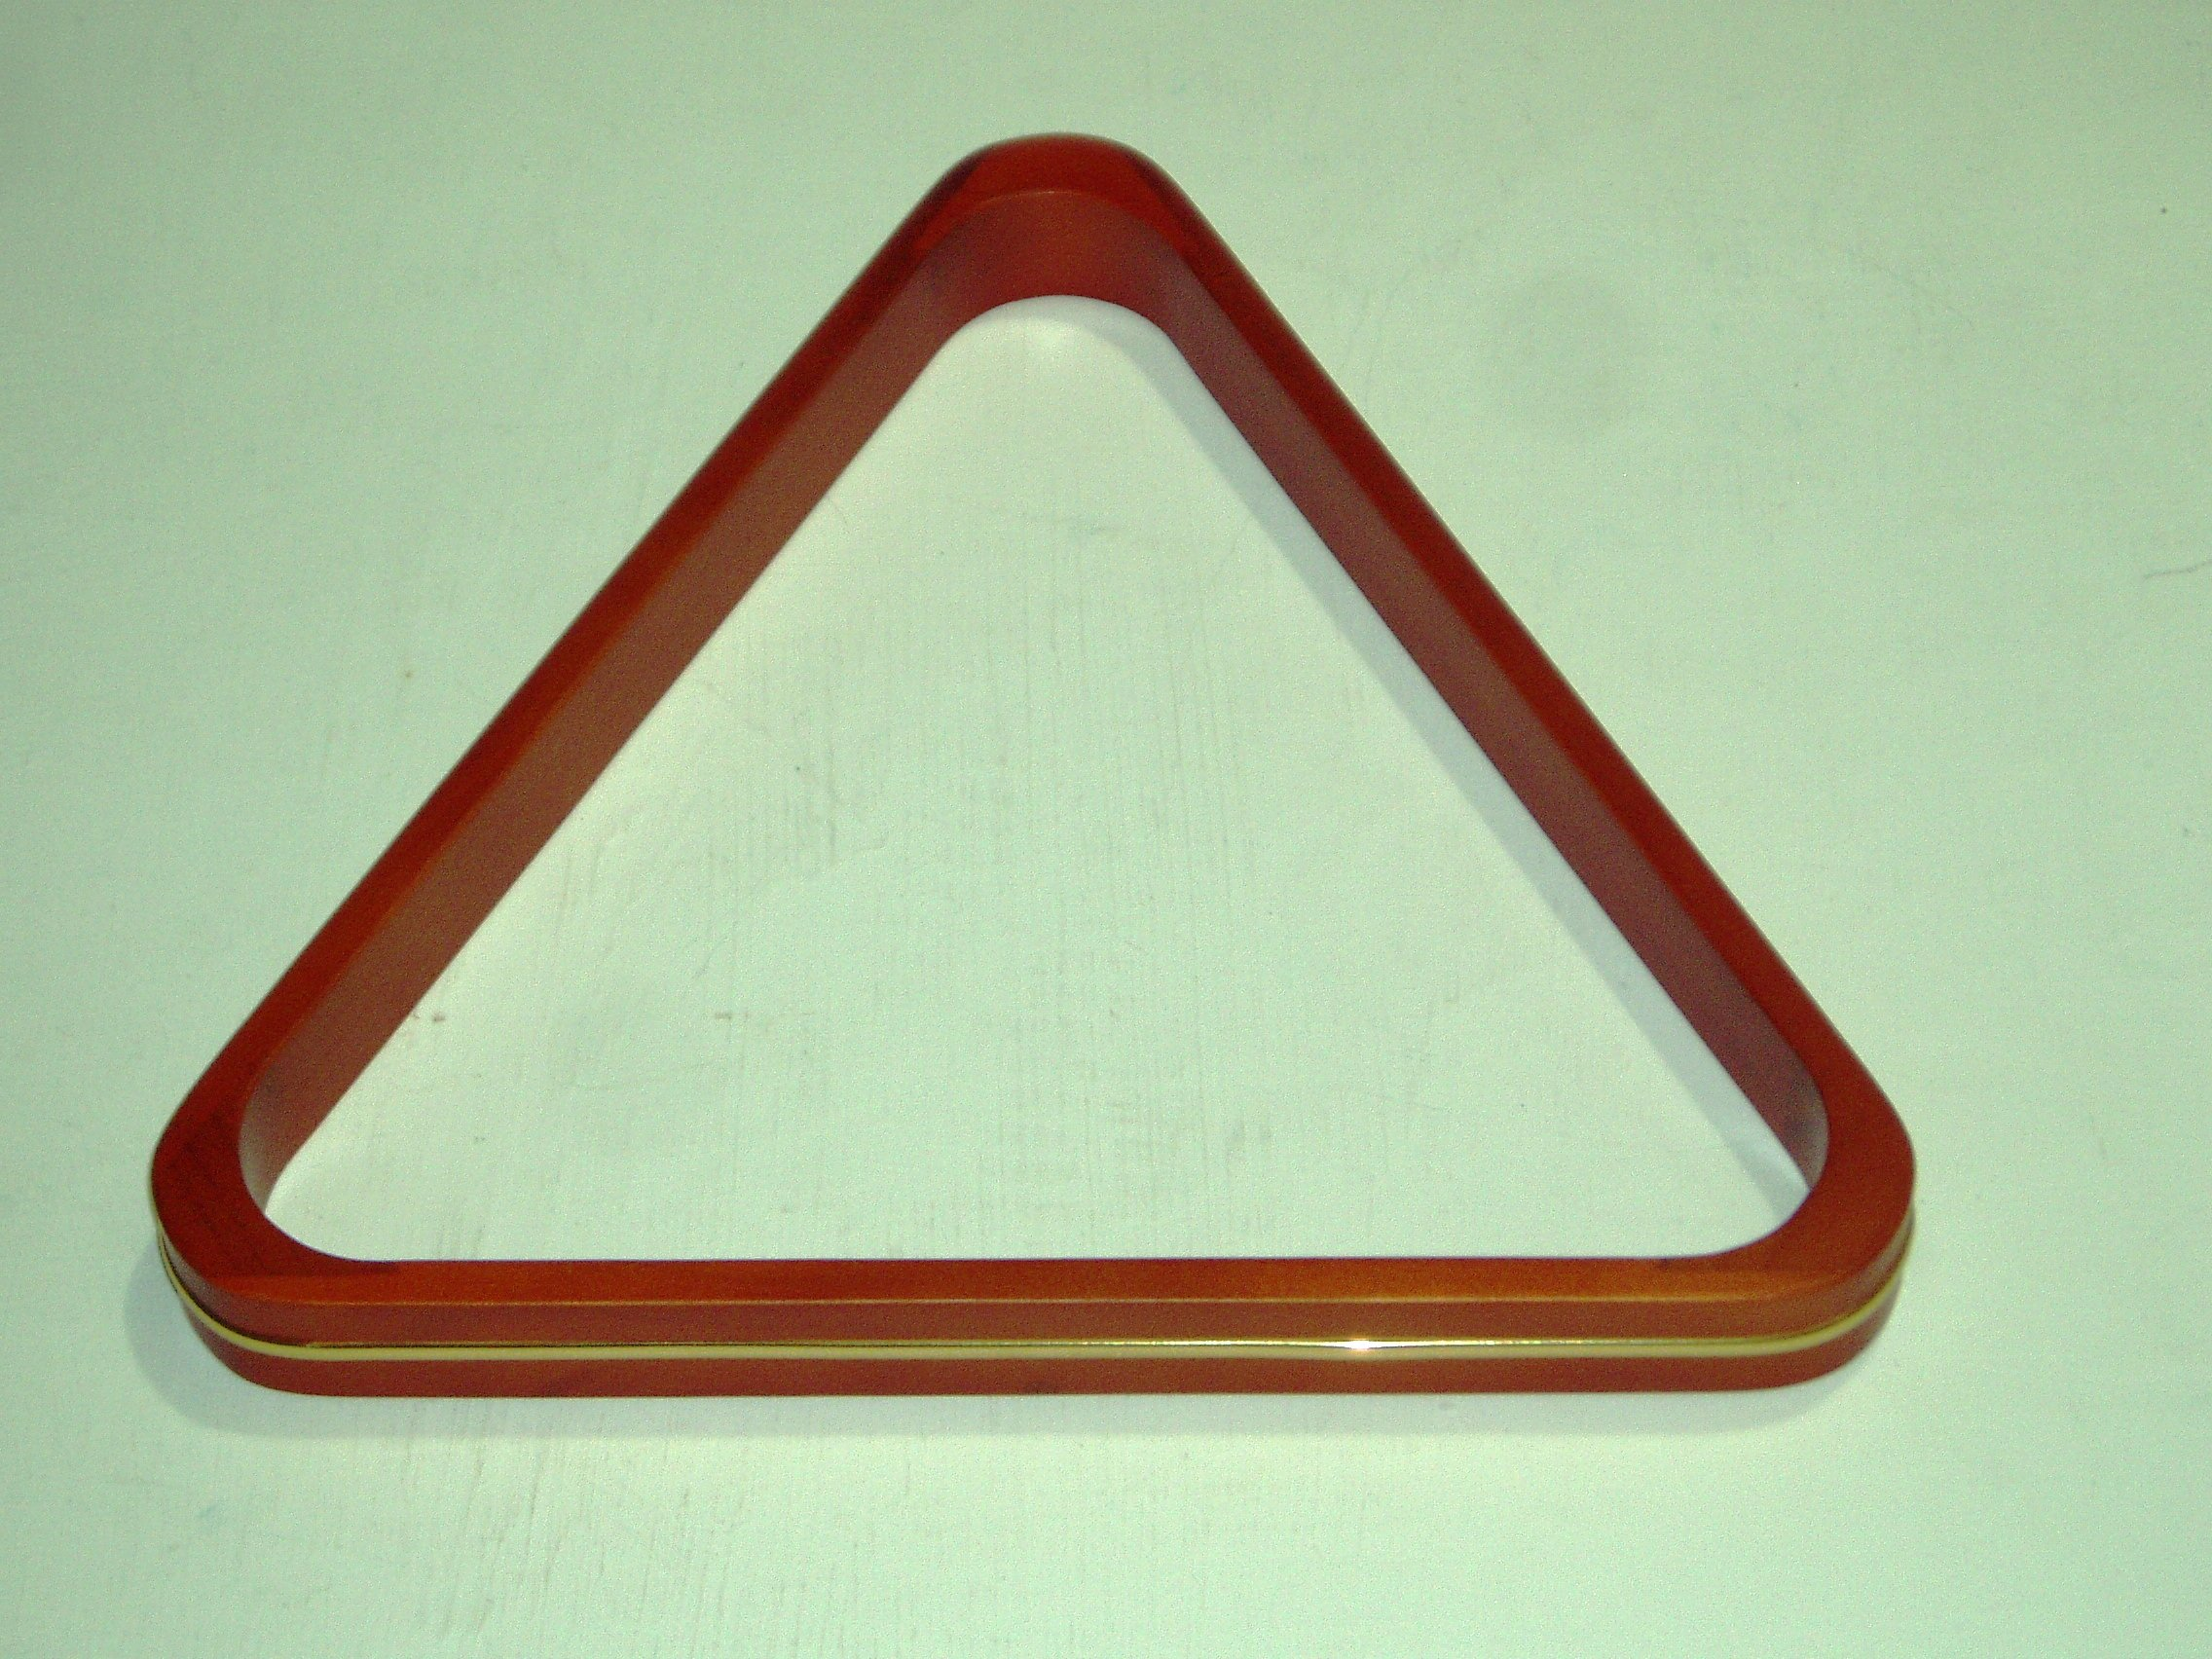 FULL SIZE WOODEN SNOOKER TRIANGLE WITH BRASS RIM (S347)